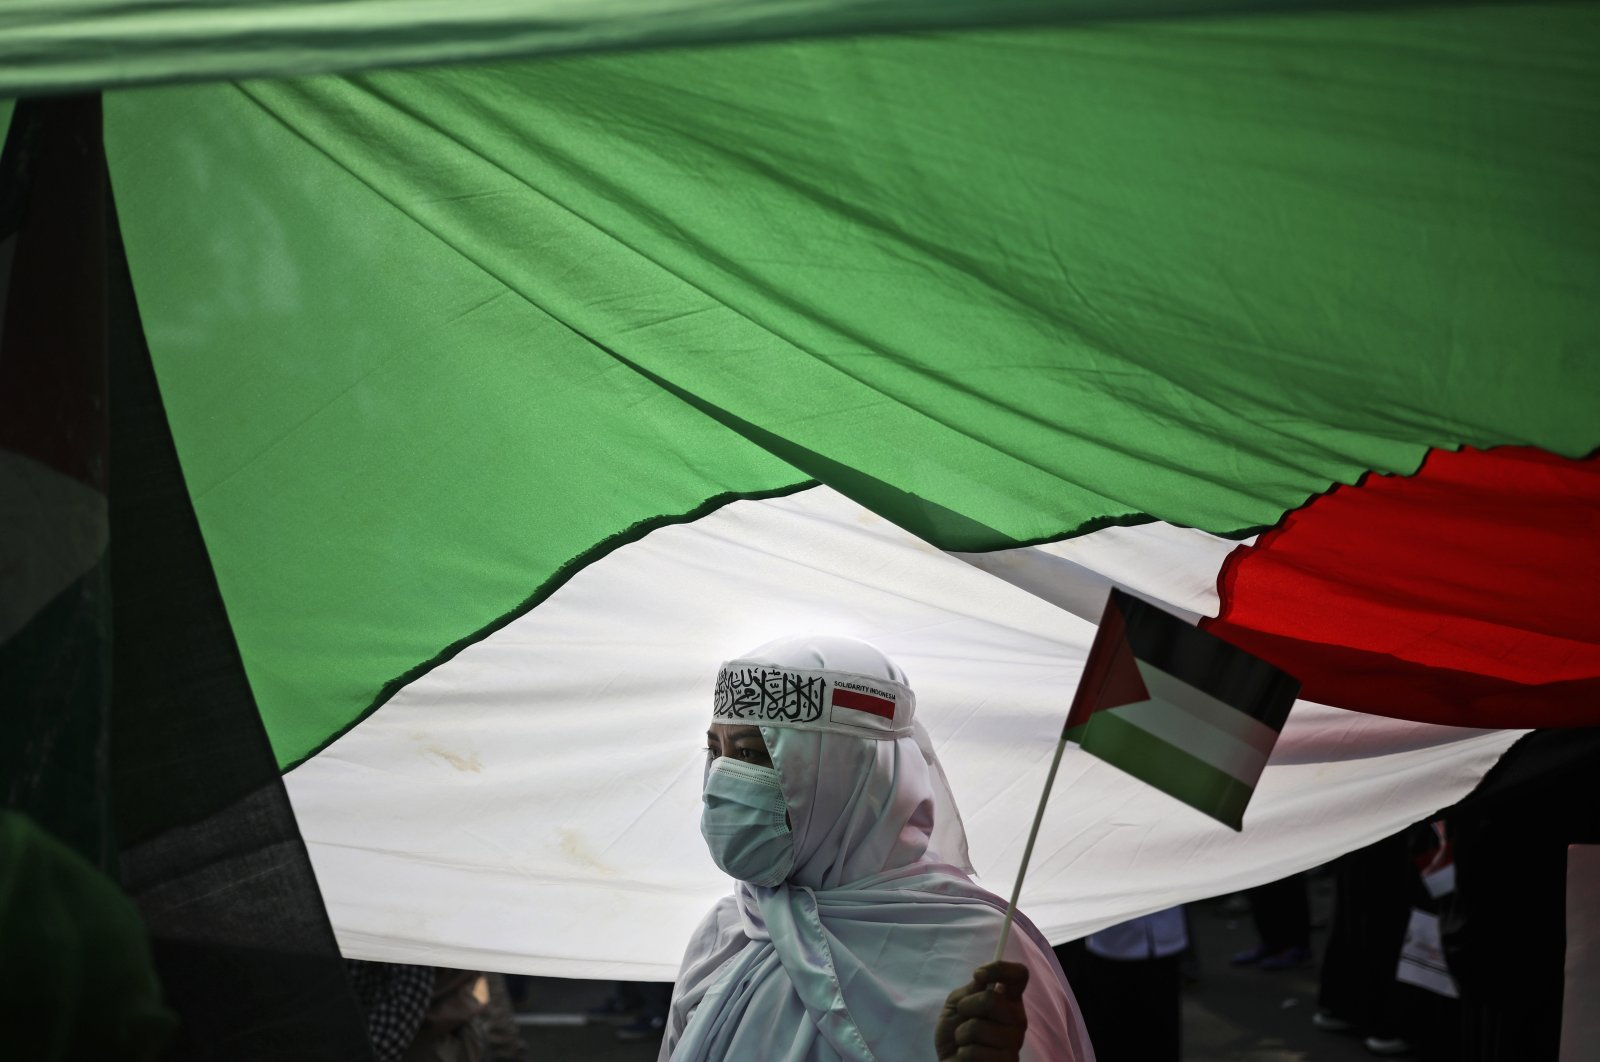 A protester stands under a large Palestinian flag during an anti-Israel rally outside the U.S. Embassy in Jakarta, Indonesia, May 18, 2021. (AP Photo)